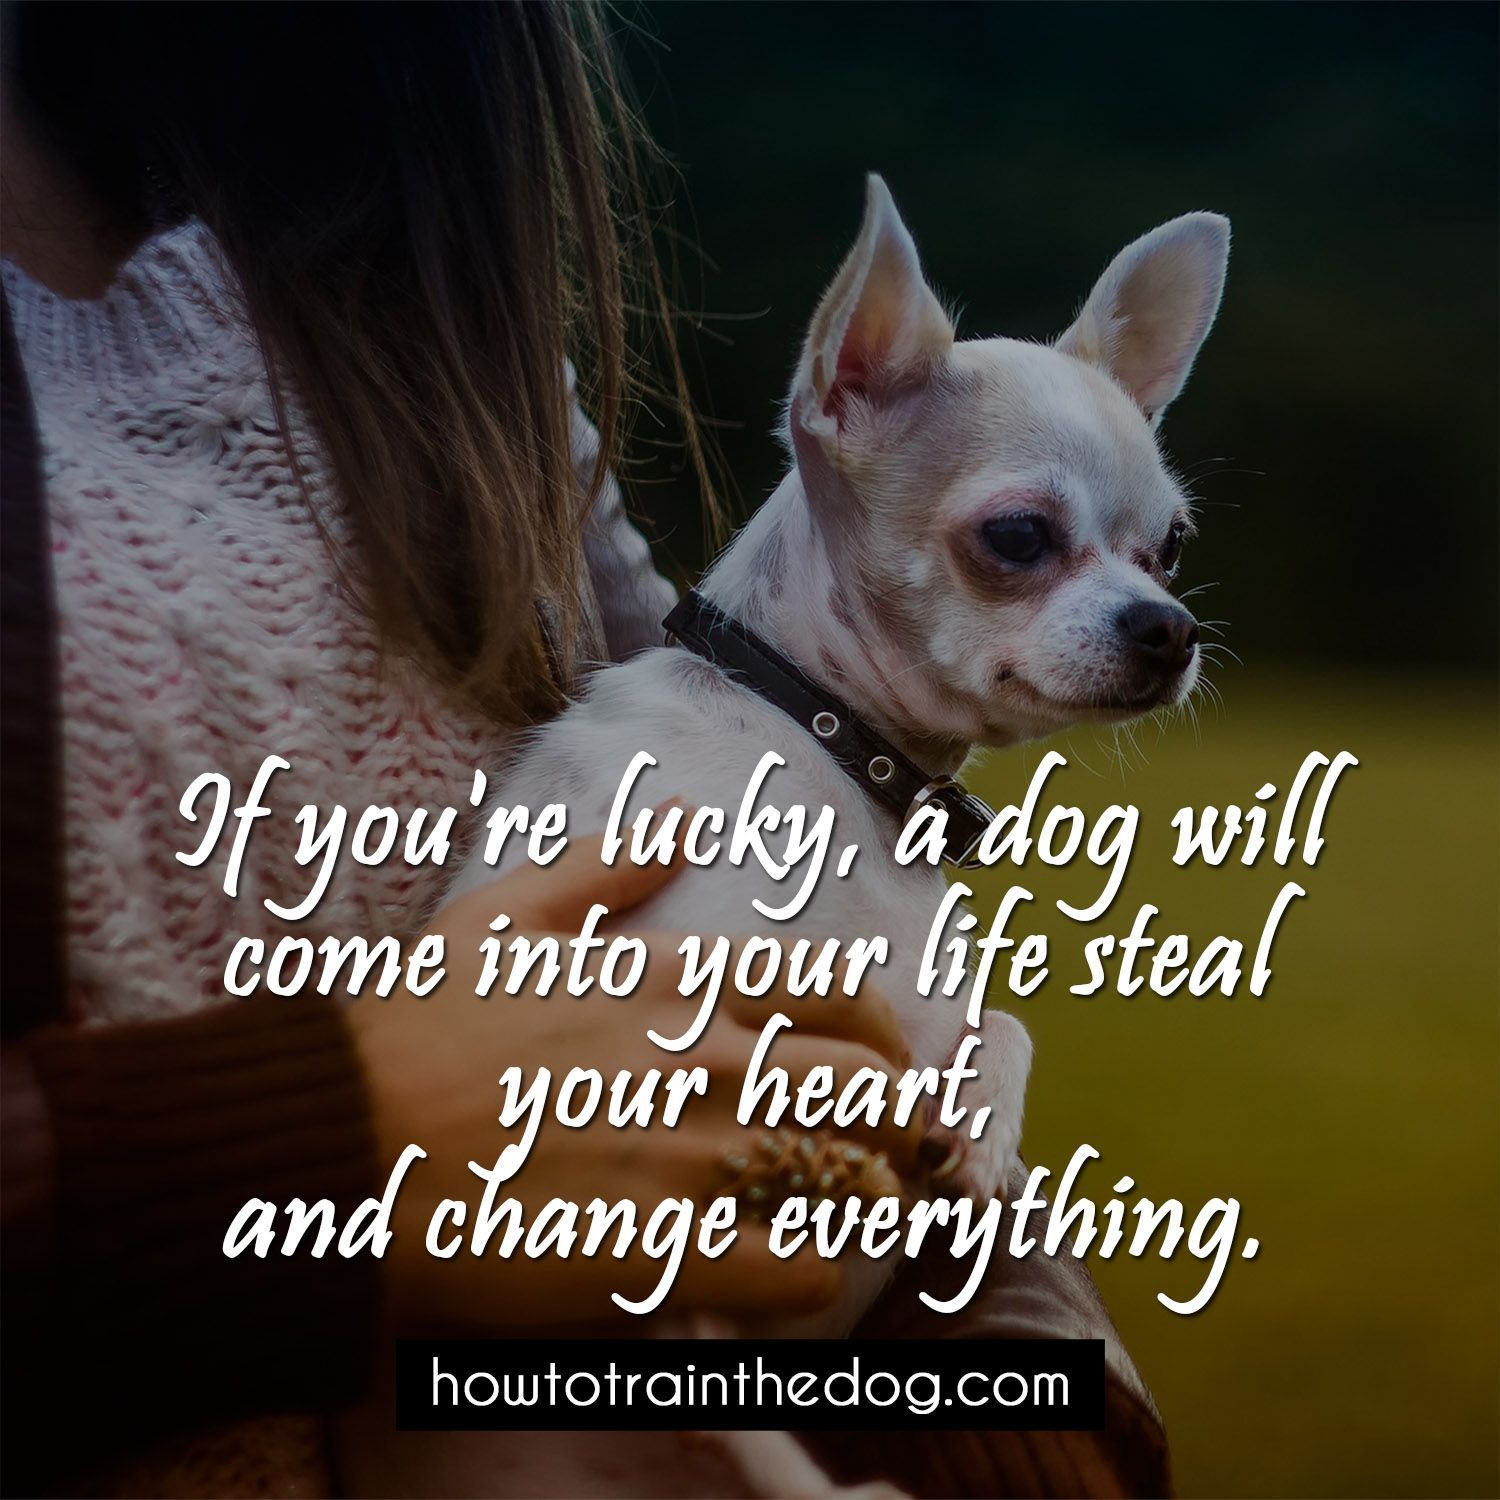 Quotes About Dog Friendship If You're Lucky A Dog Will Come Into Your Life Steal Your Heart